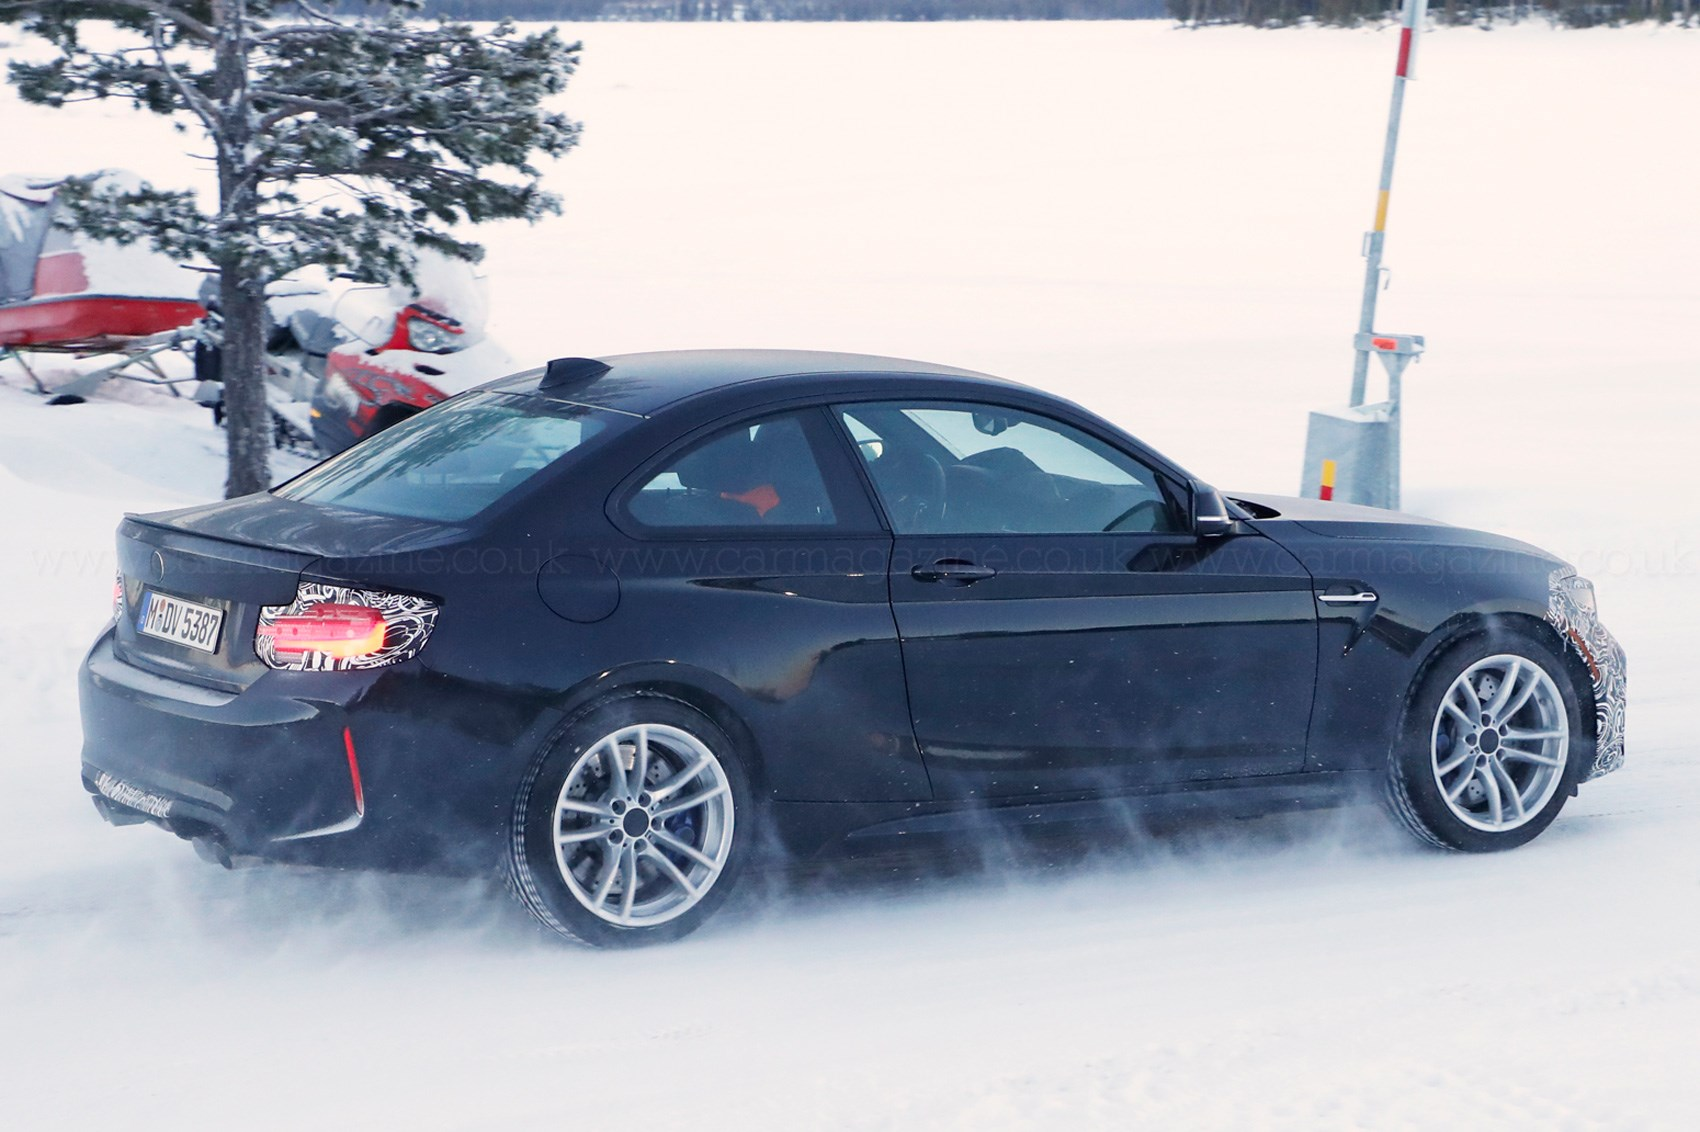 BMW M2 CS for 2017: could this be BMW's best driver's car? | CAR Magazine